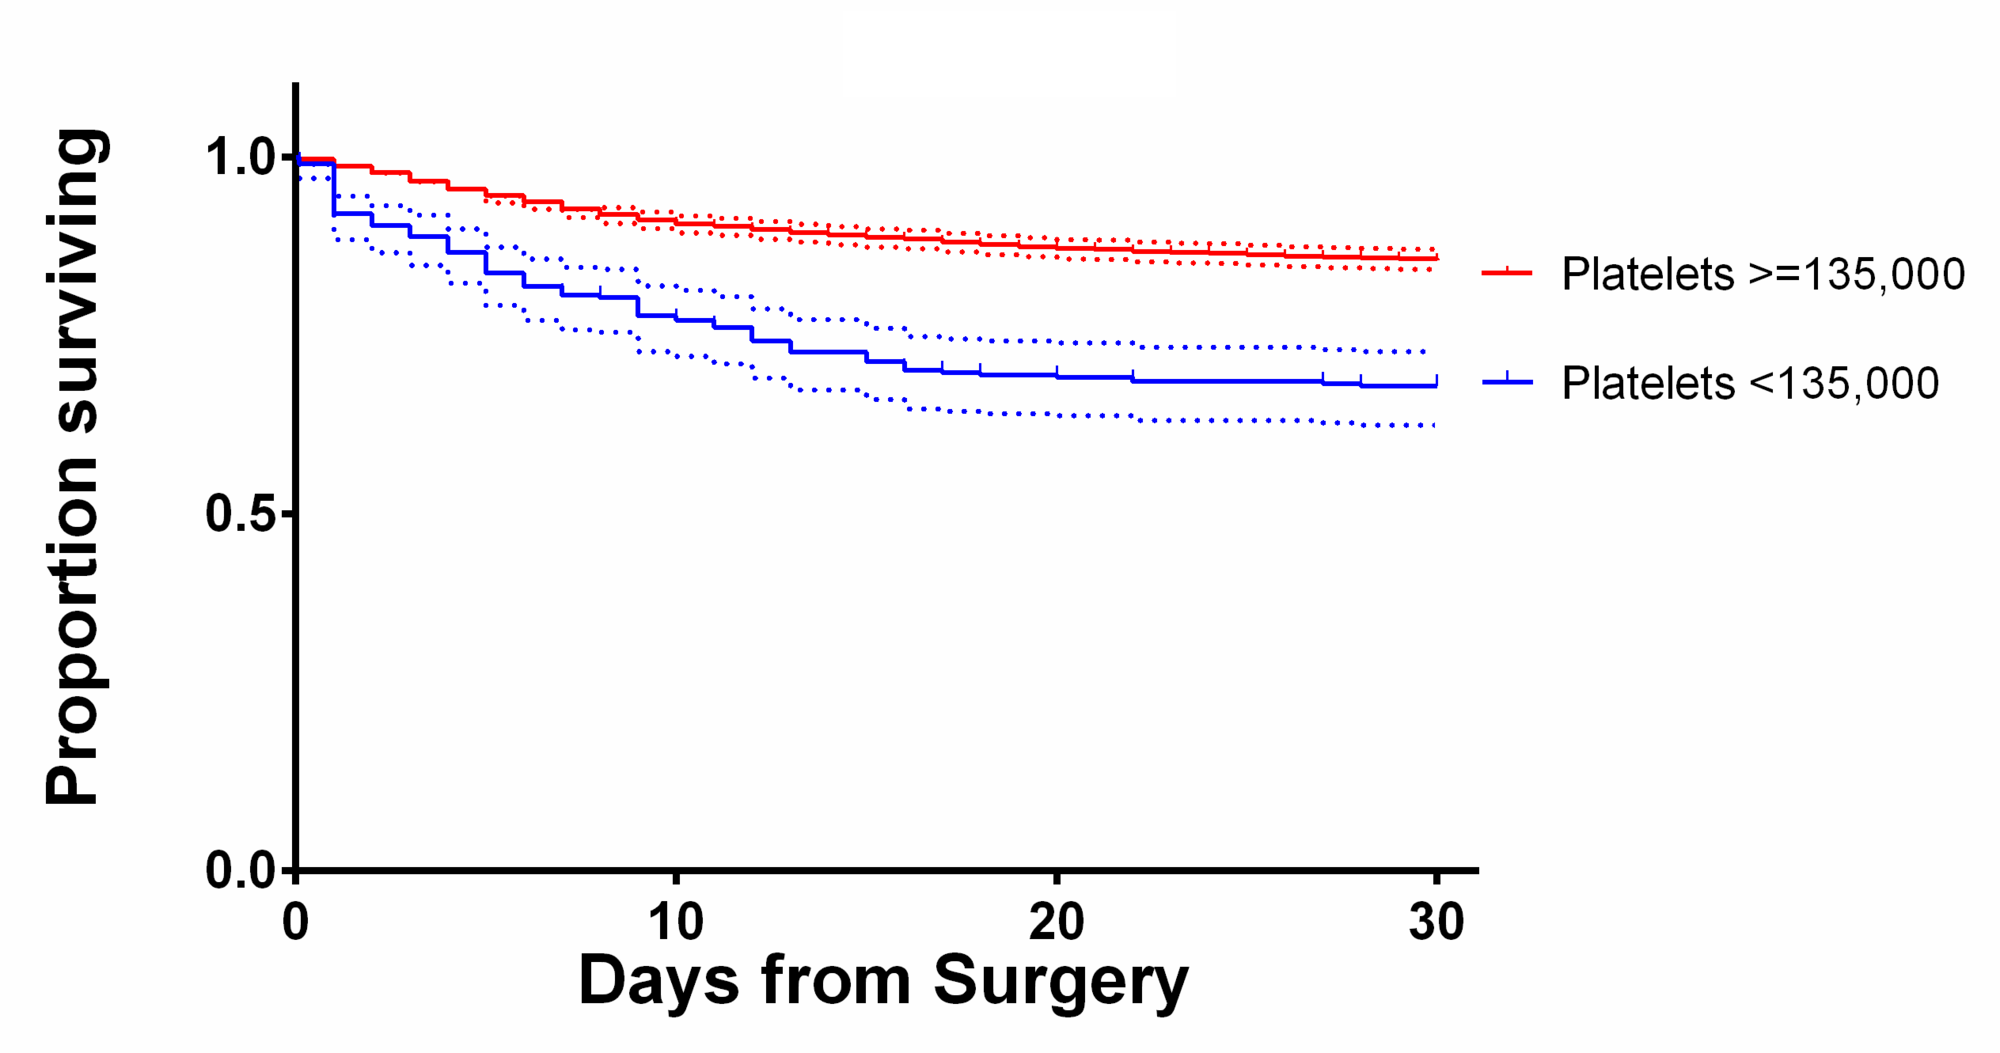 Kaplan-Meier-curves-showing-30-day-survival-of-patients-with-platelet-counts-above-and-below-the-135,000-cutoff-with-95%-confidence-intervals.